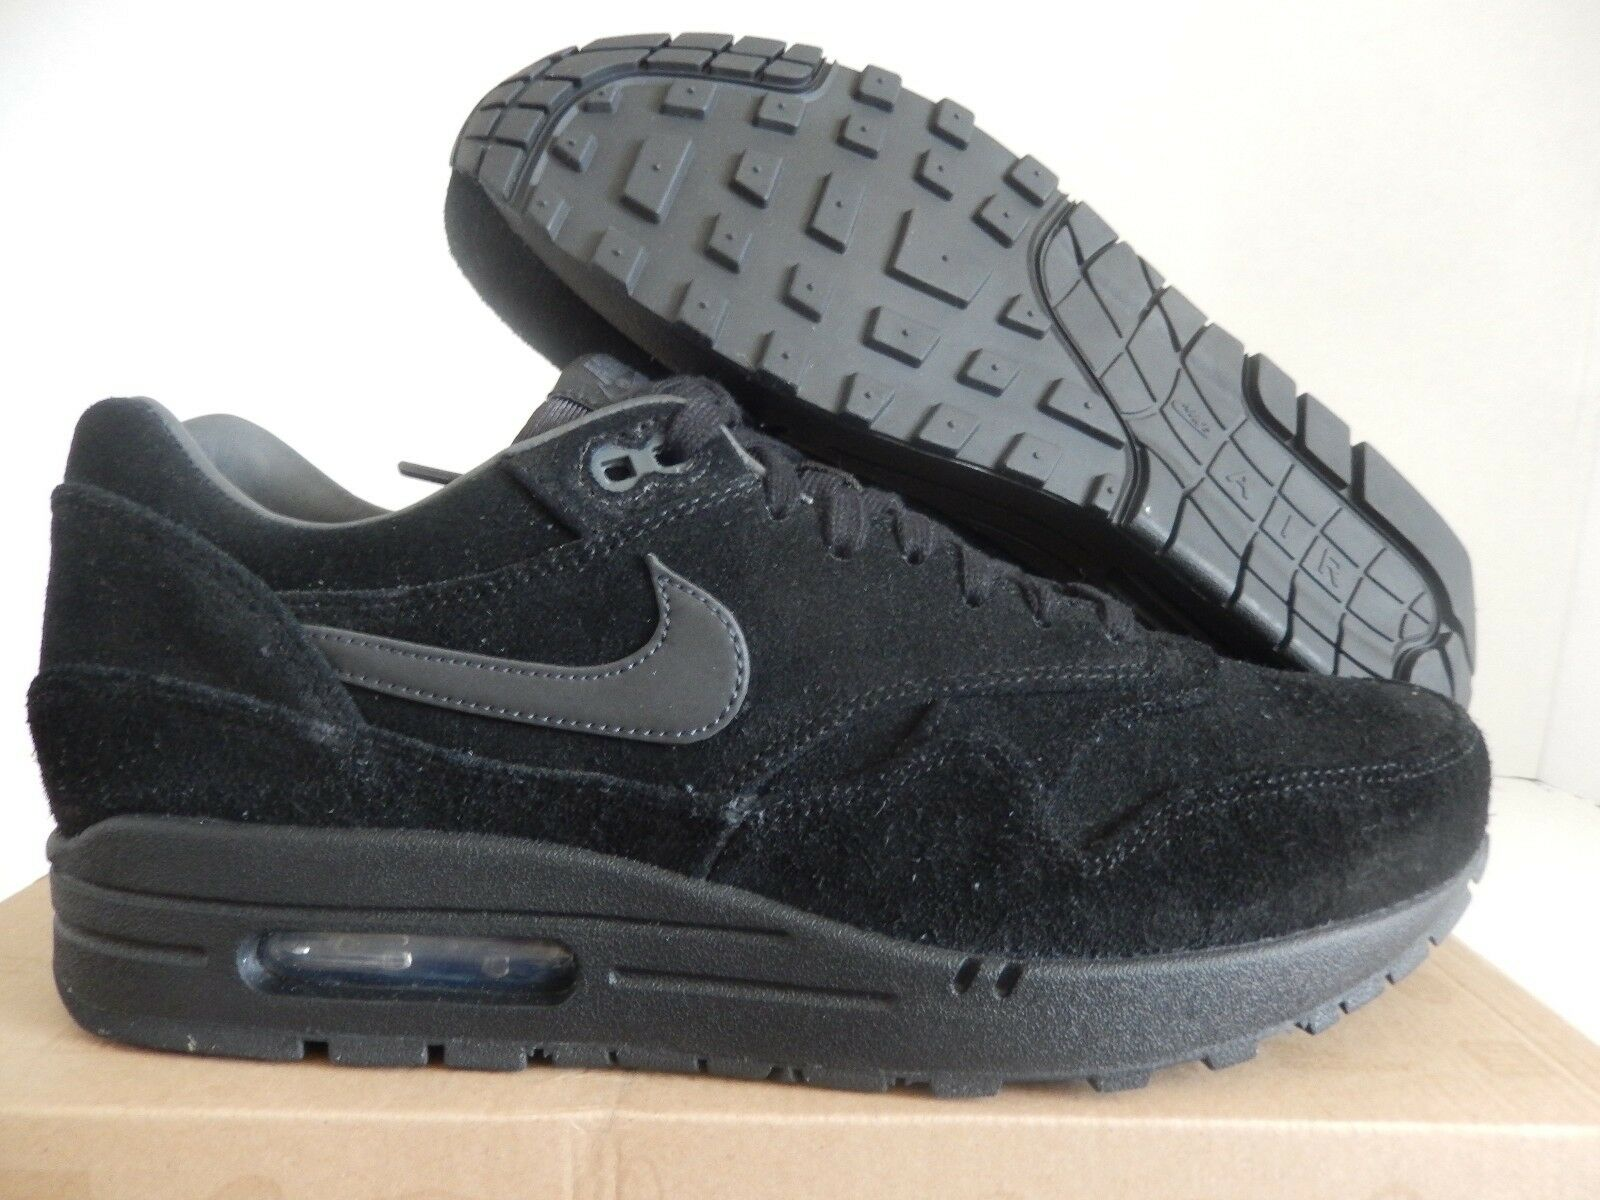 NIKE AIR MAX 1 PRM PREMIUM BLACK-ANTHRACITE-ANTHRACITE SZ 10.5 [512033-011]